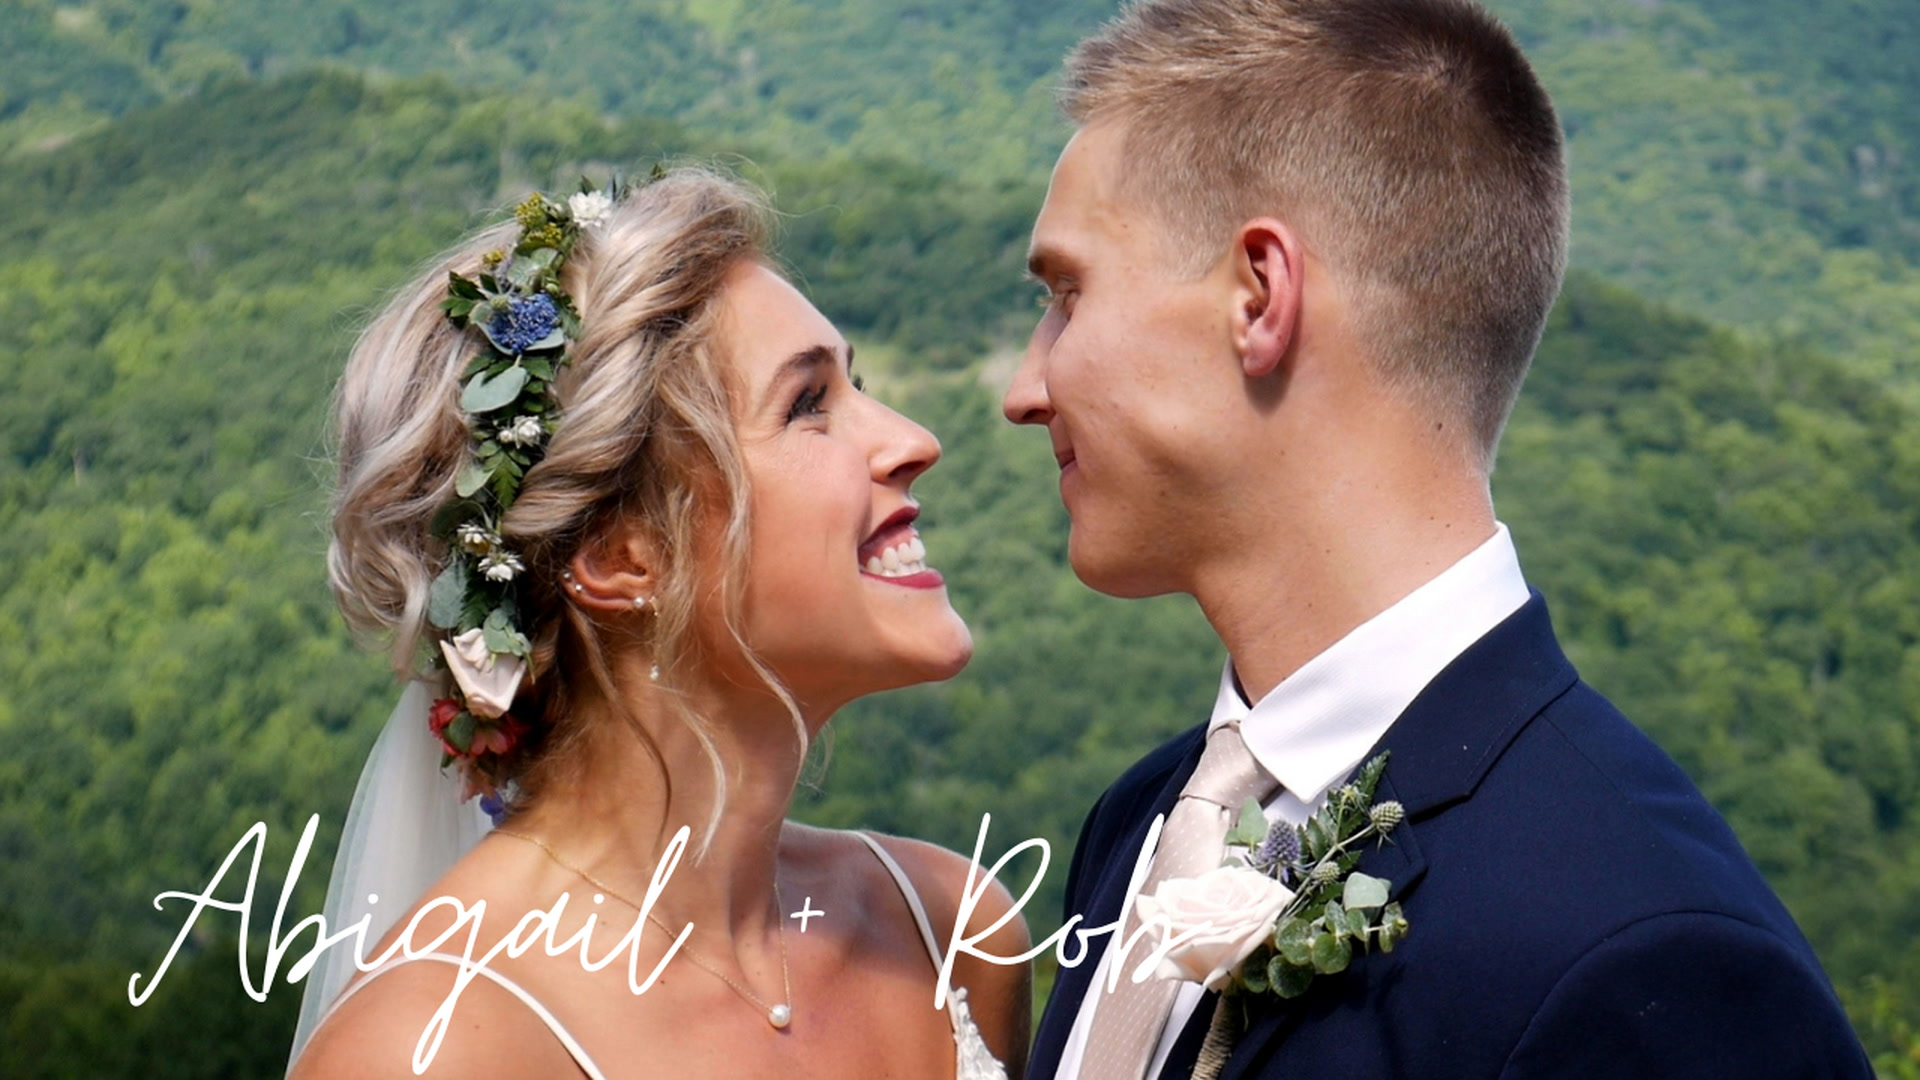 Abigail + Rob | Montreat, North Carolina | Family home